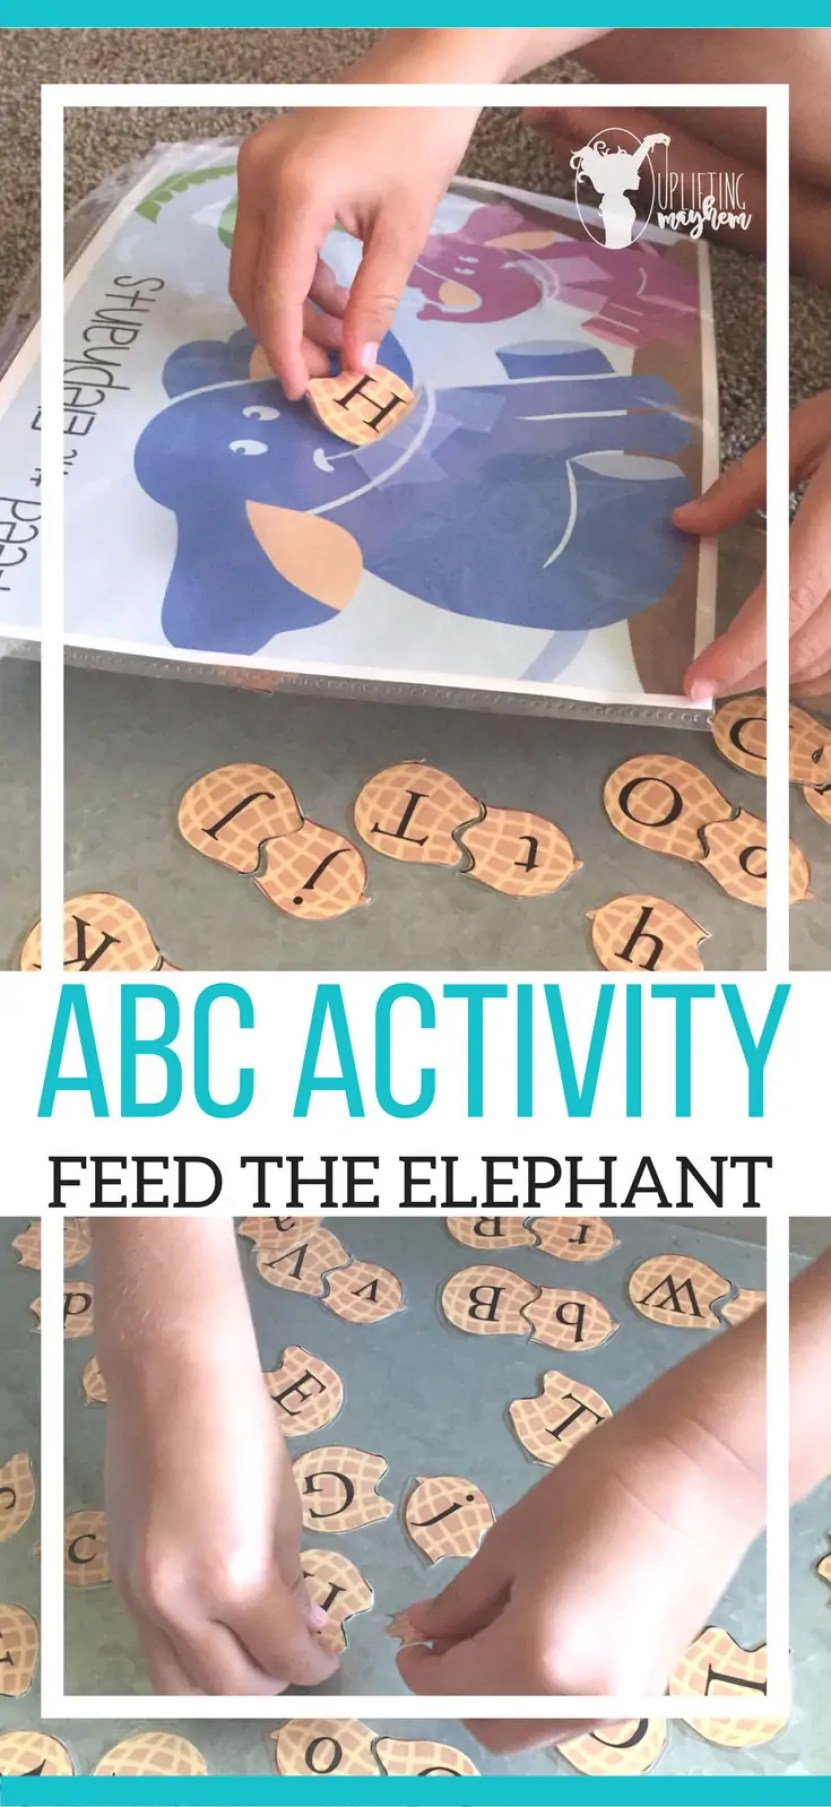 ABC Activity, Feed the Elephant